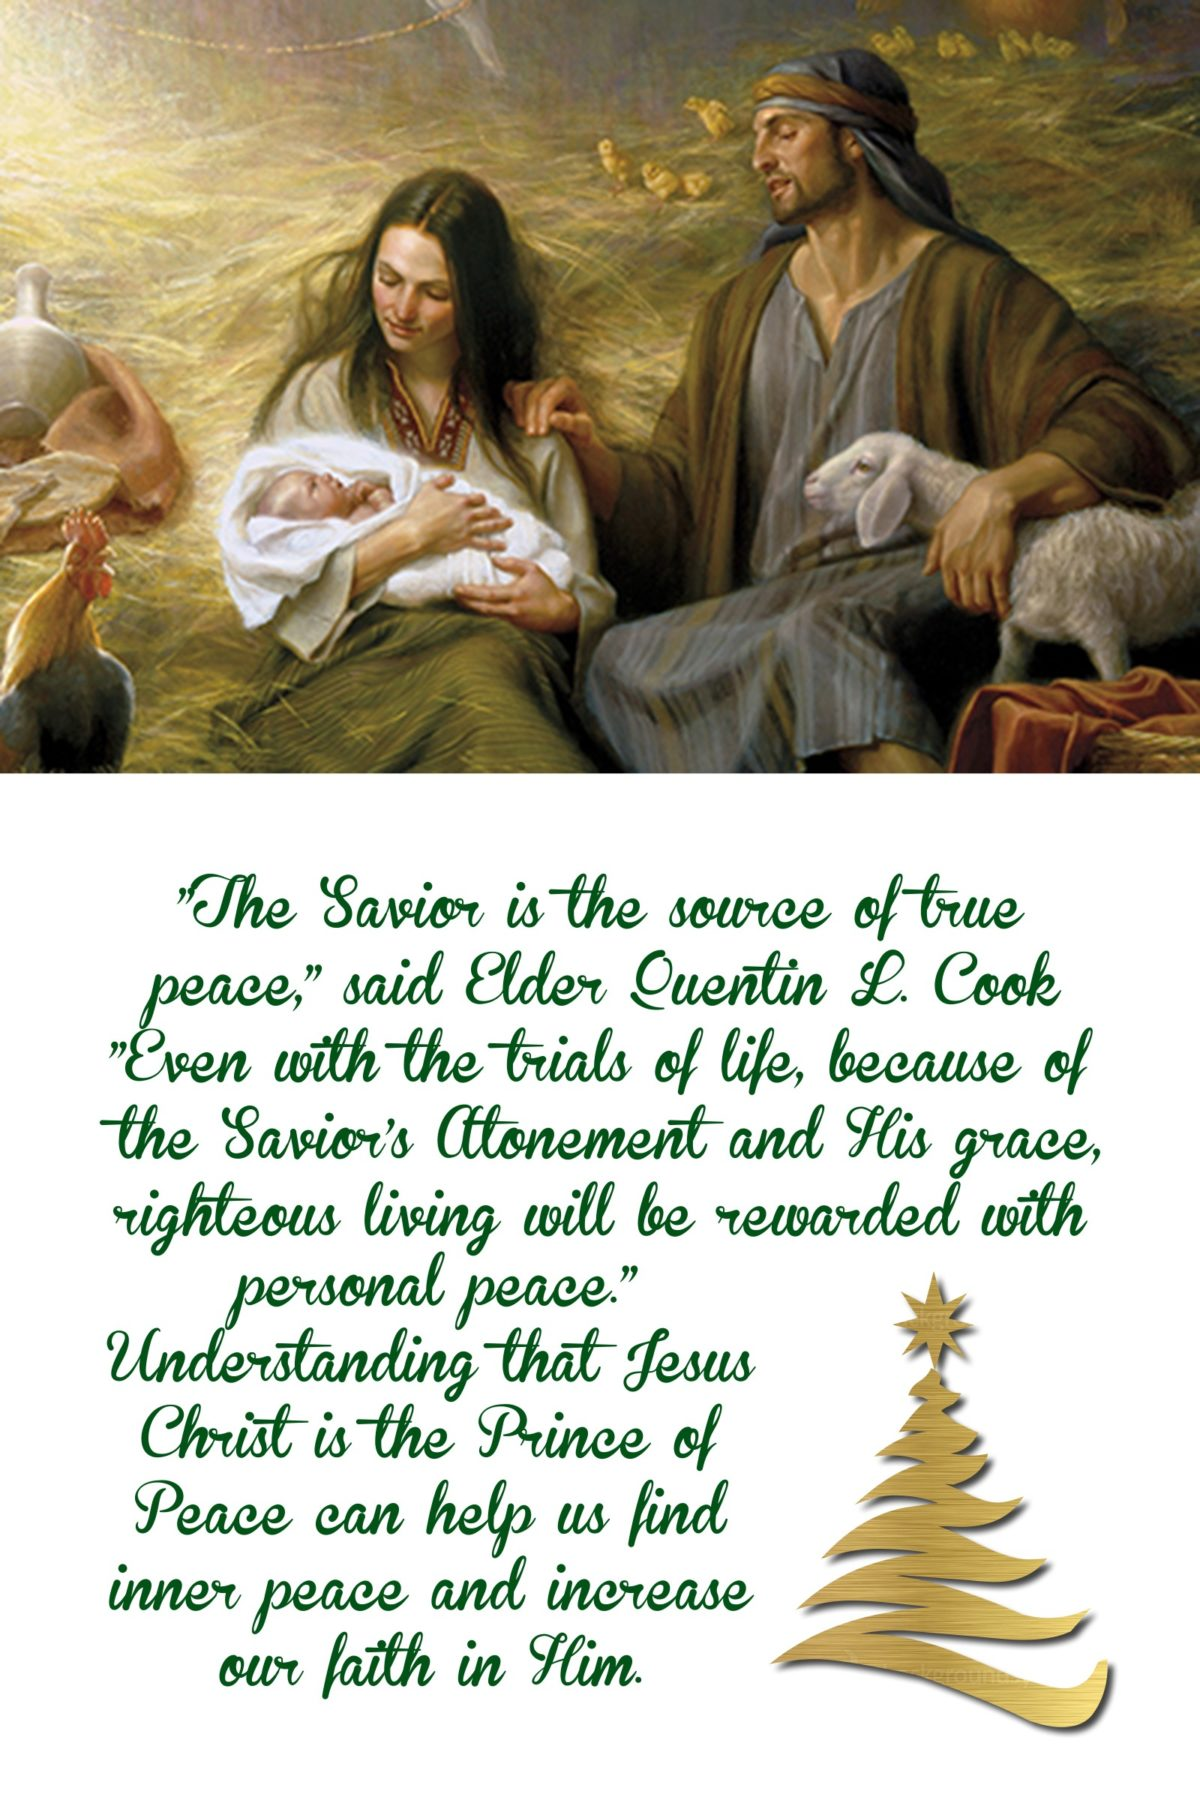 The Savior is the source of true peace…quote